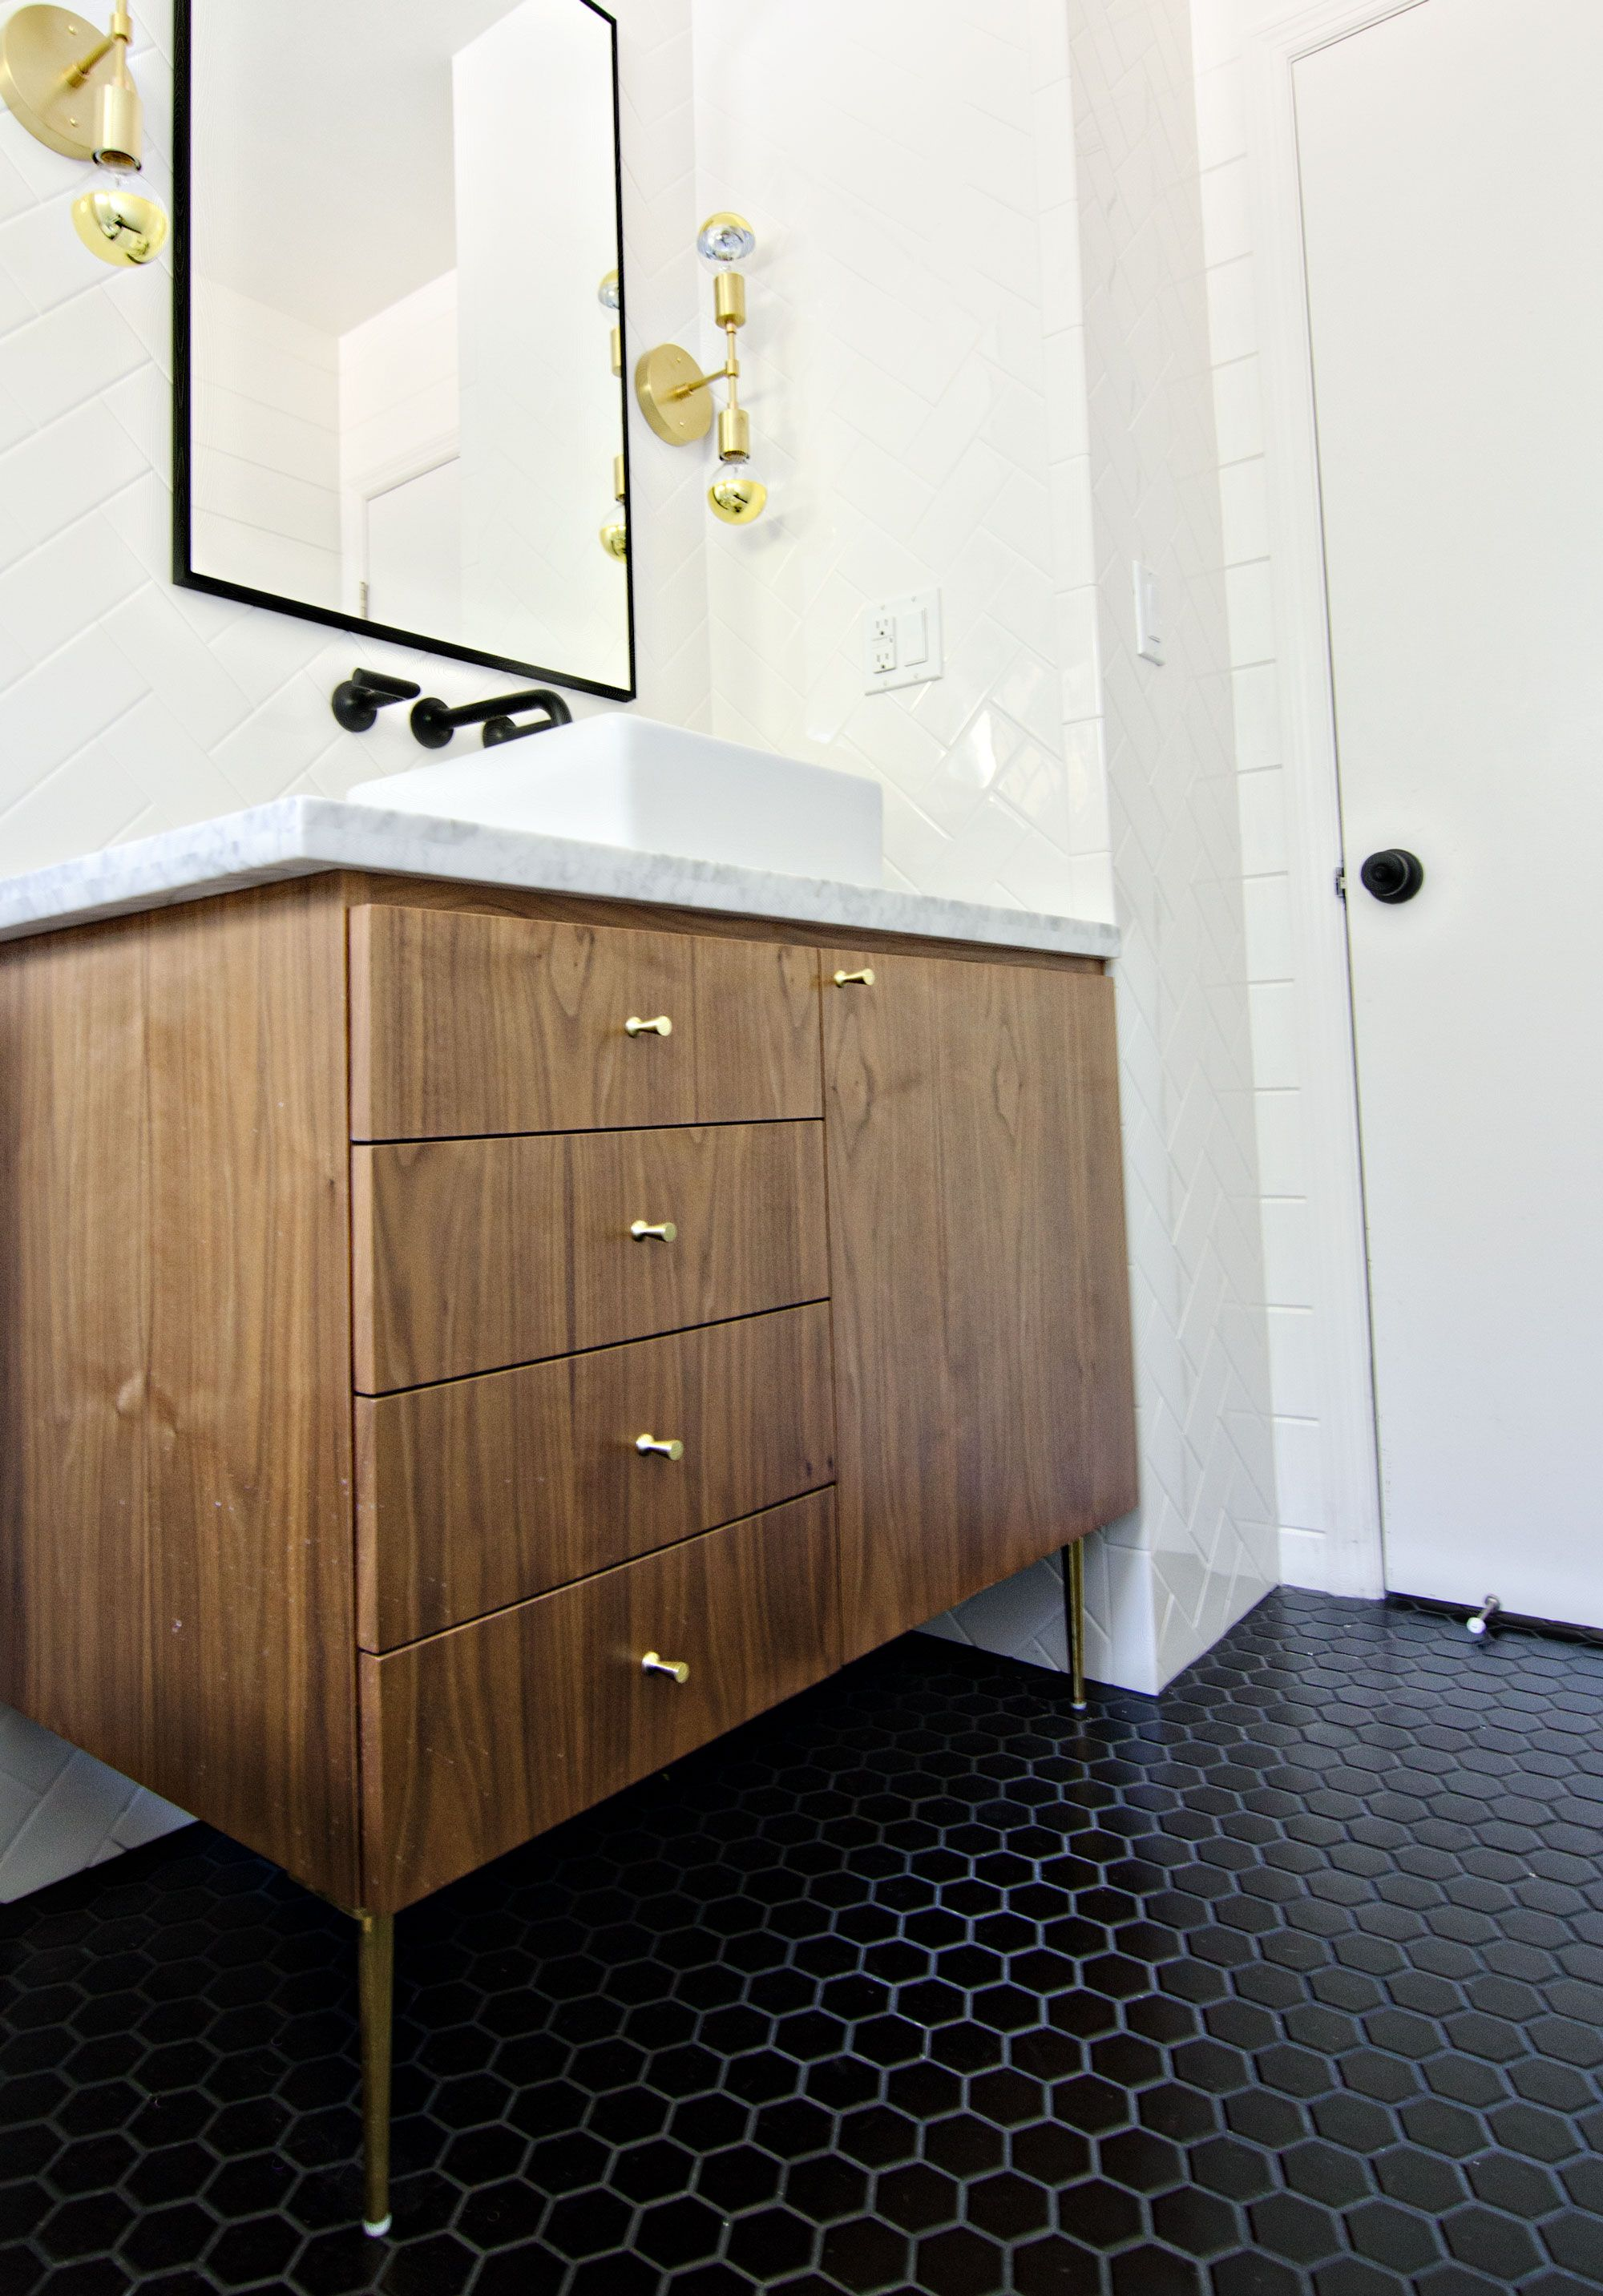 How To Make A Mid Century Inspired Vanity From A Modern Cabinet